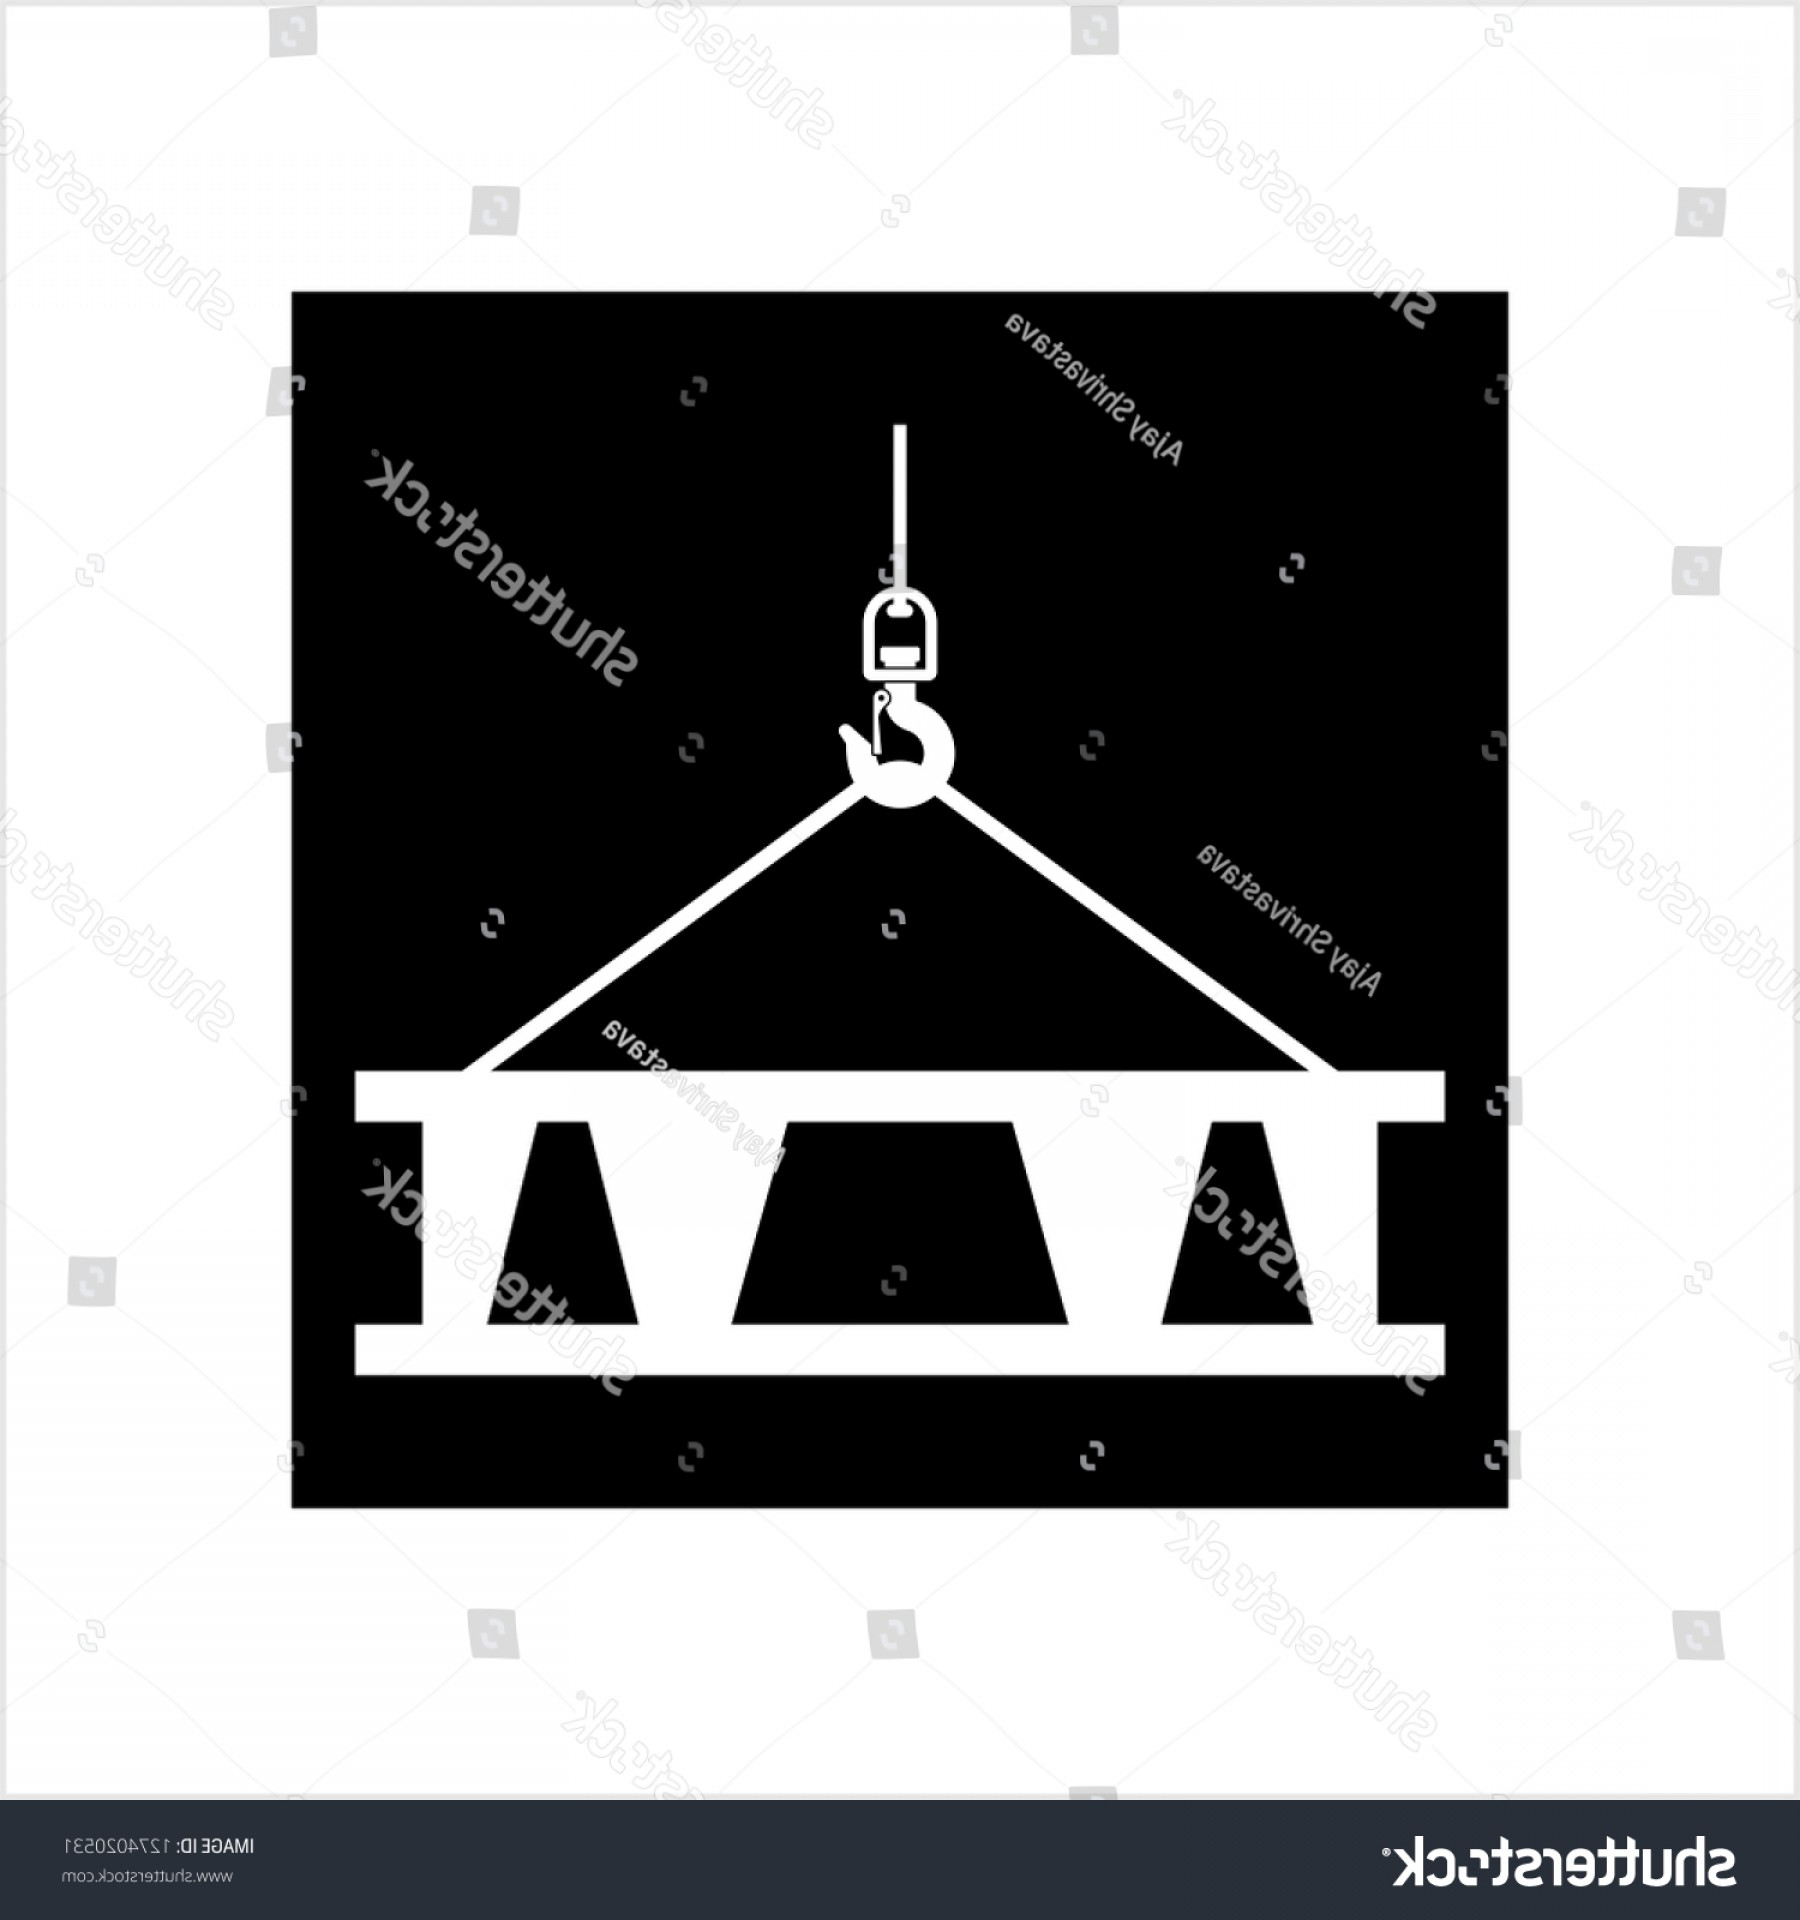 Tow Hook Vector Art: Crane Hook Icon Tow Holding Concrete